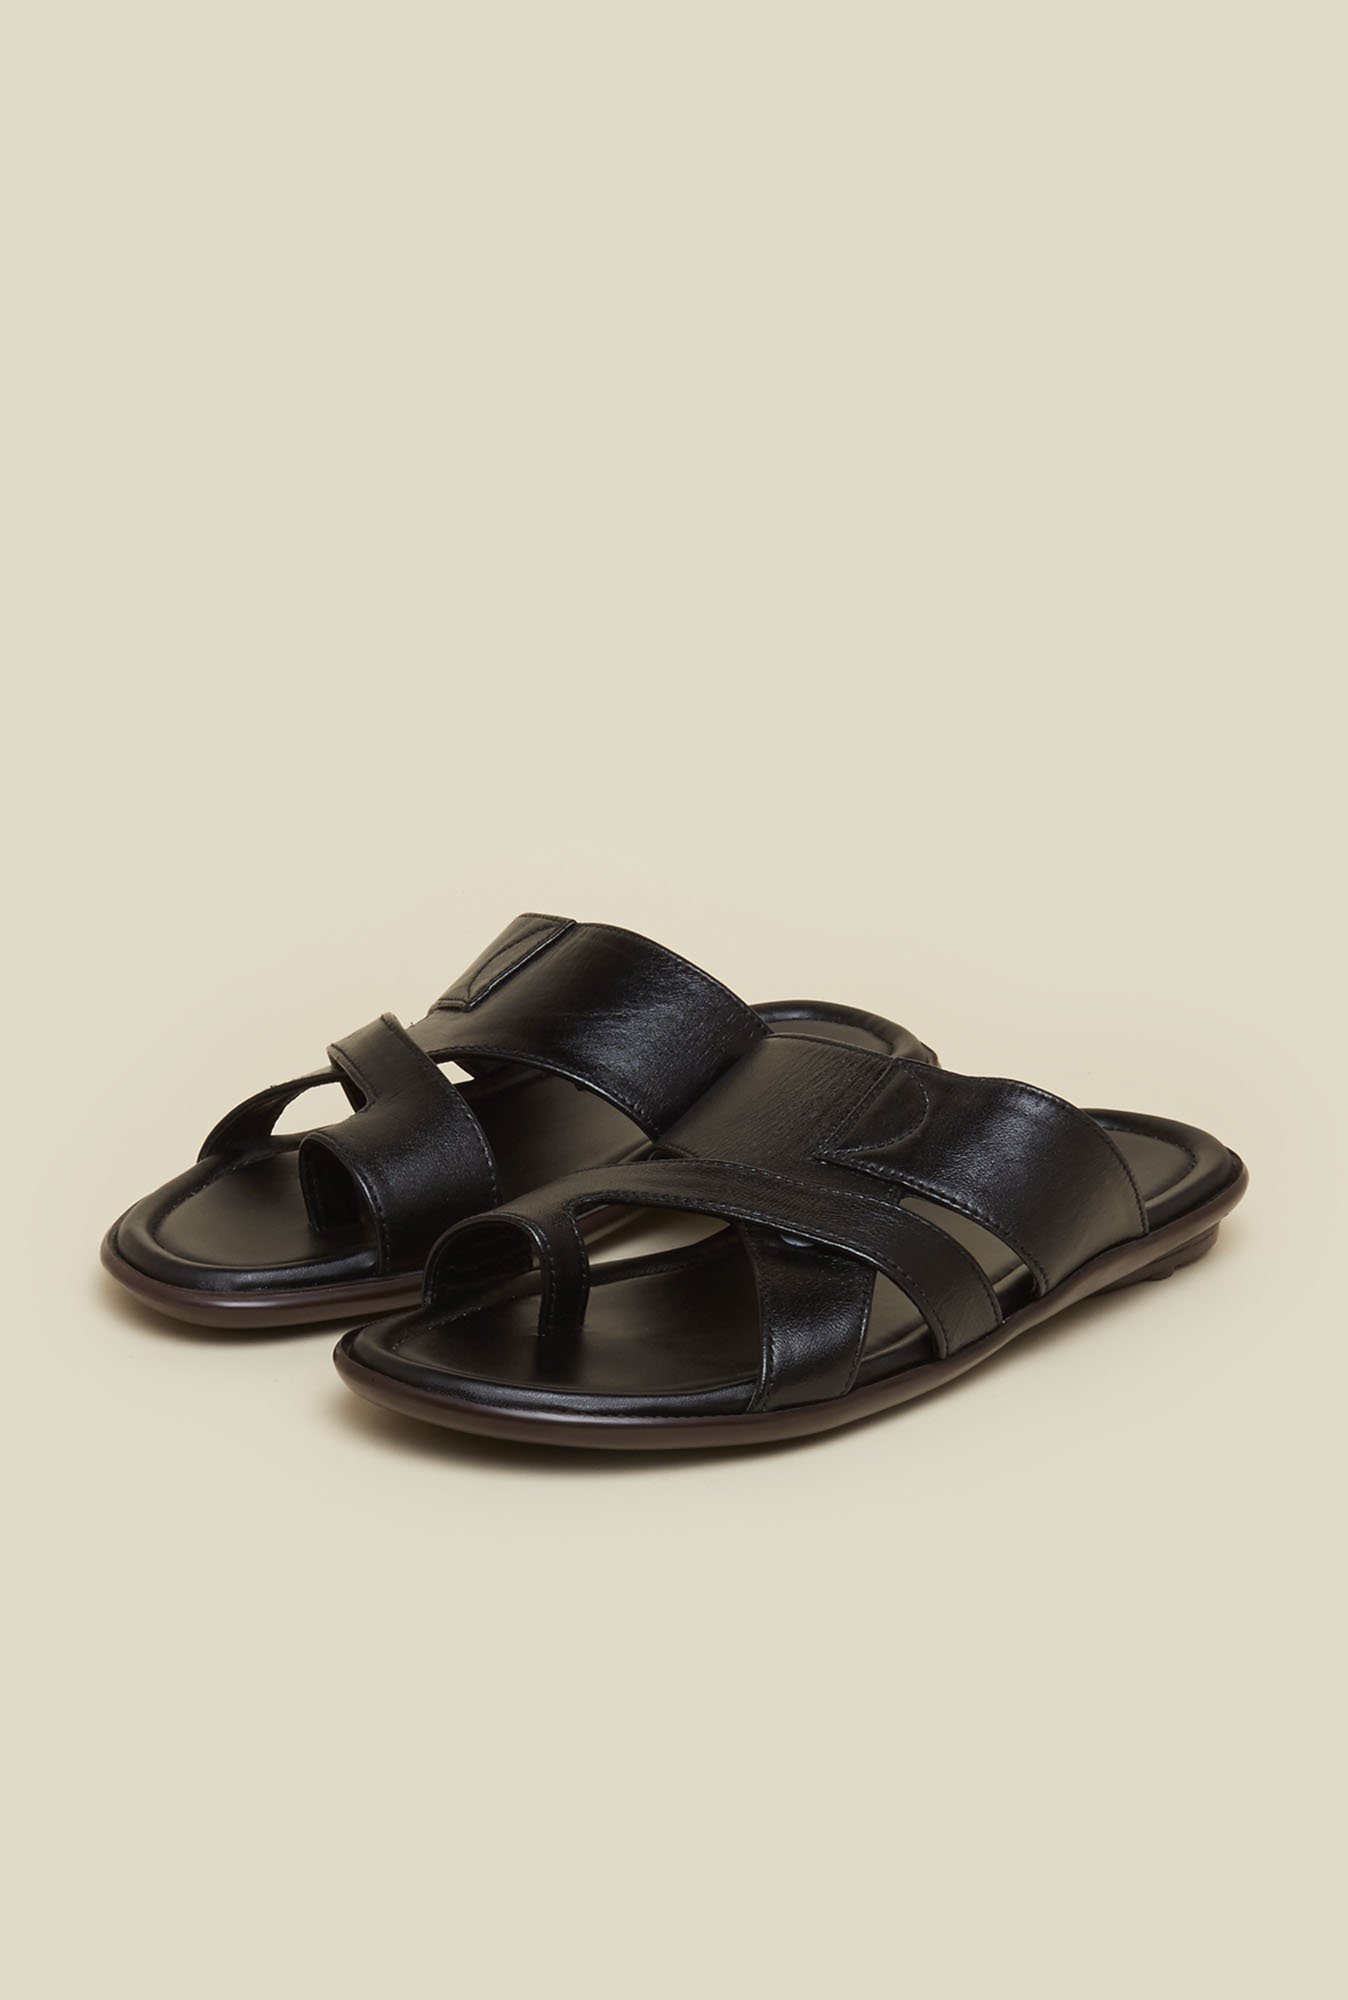 Mochi Black Leather Toe Ring Sandals